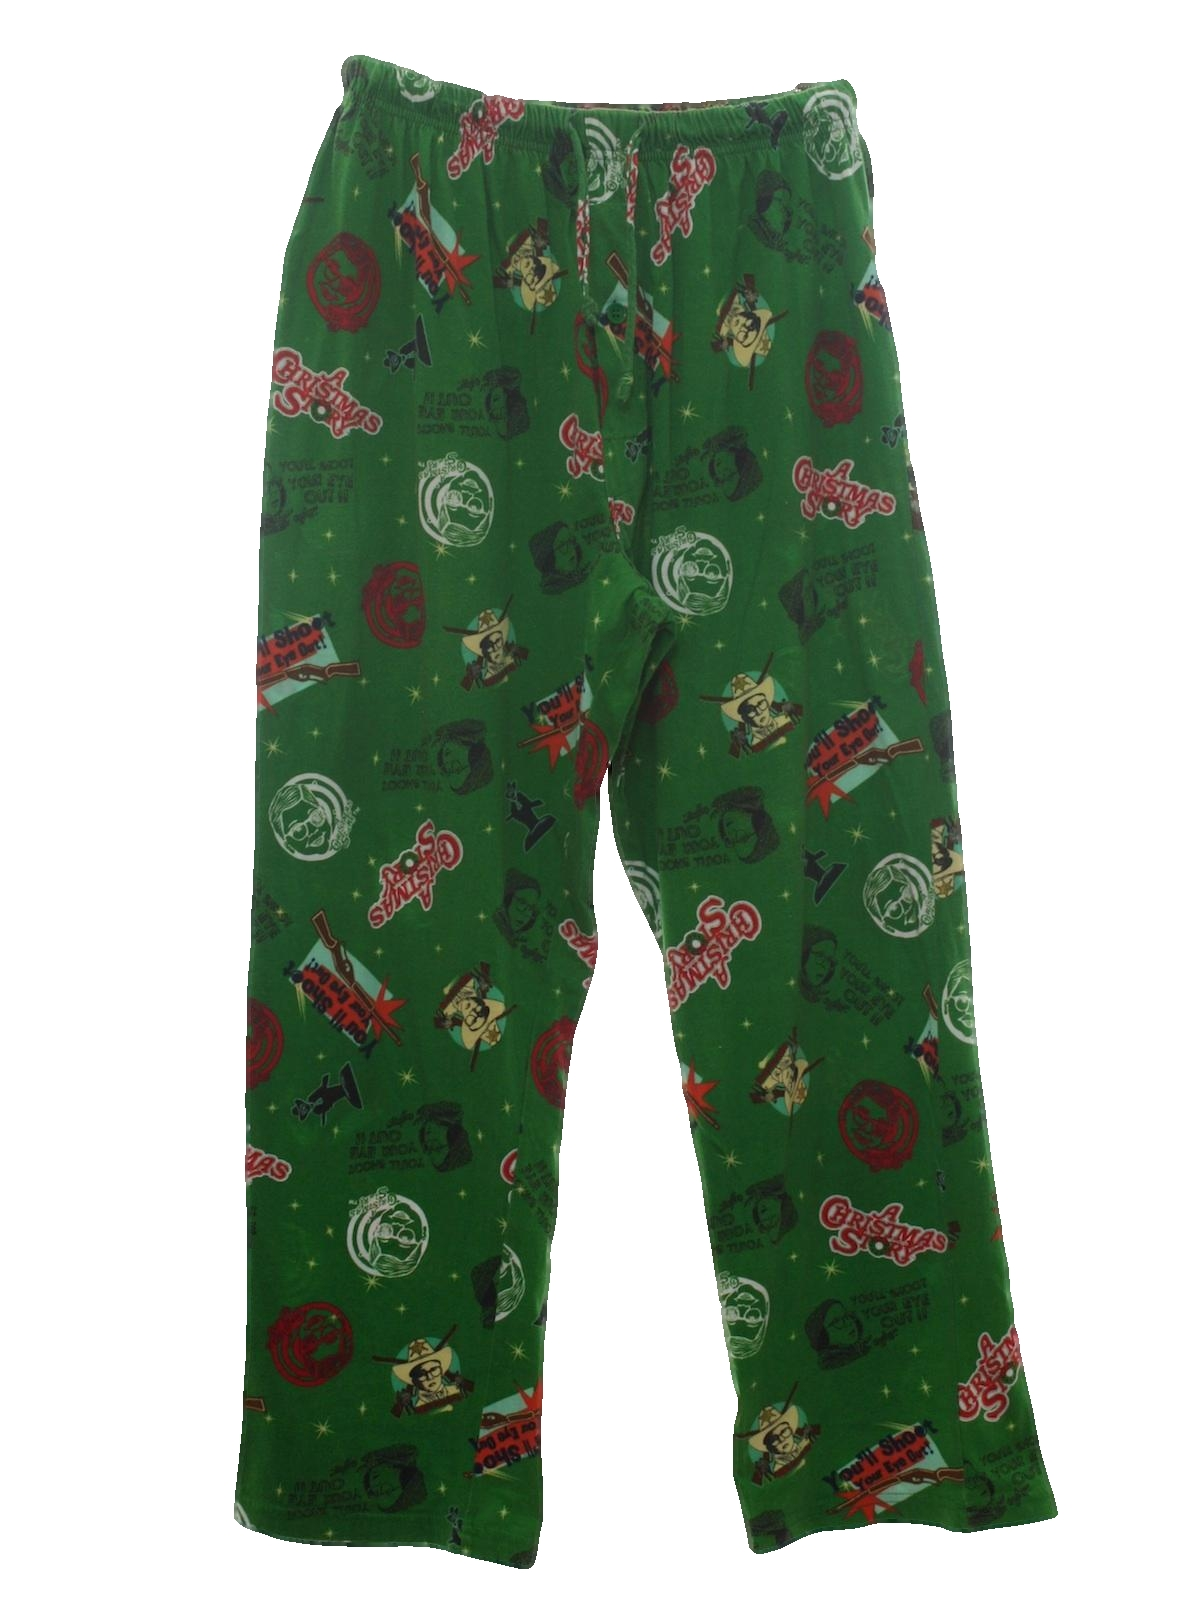 nineties christmas pants to wear with your ugly christmas sweater 90s a christmas story movie unisex green background with red beige white blacklight